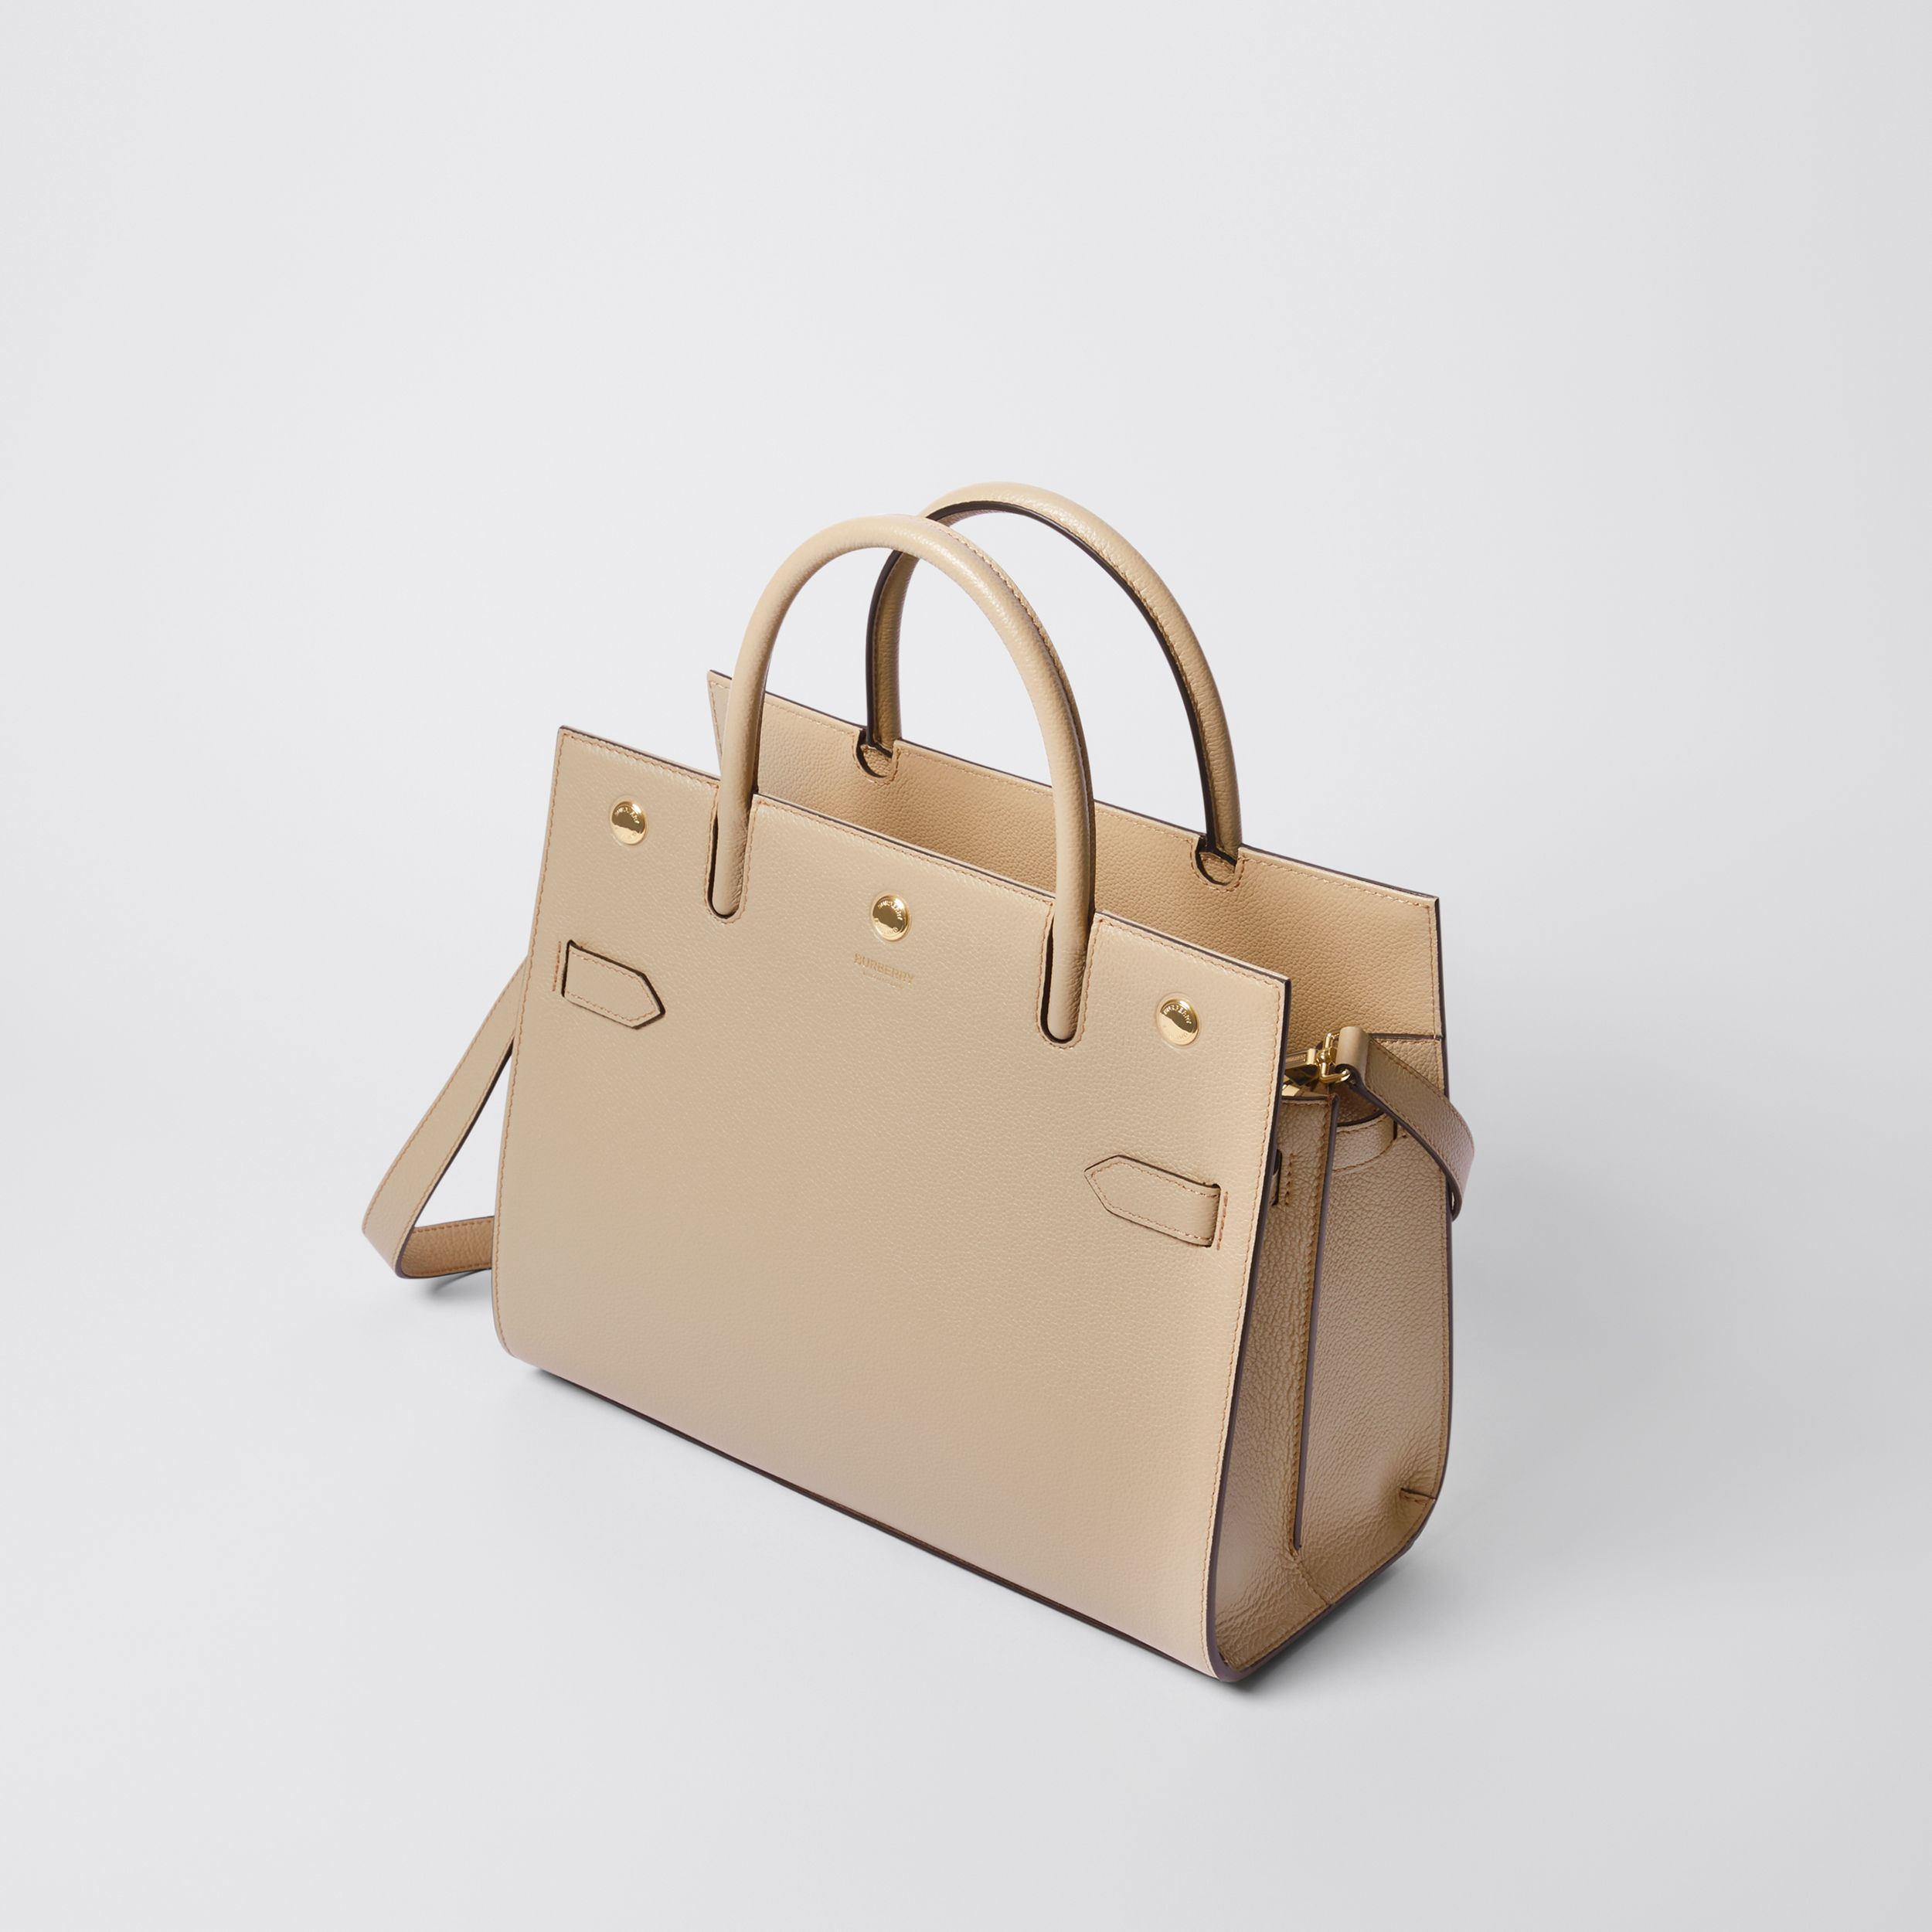 Small Leather Two-handle Title Bag in Light Beige - Women | Burberry Singapore - 4